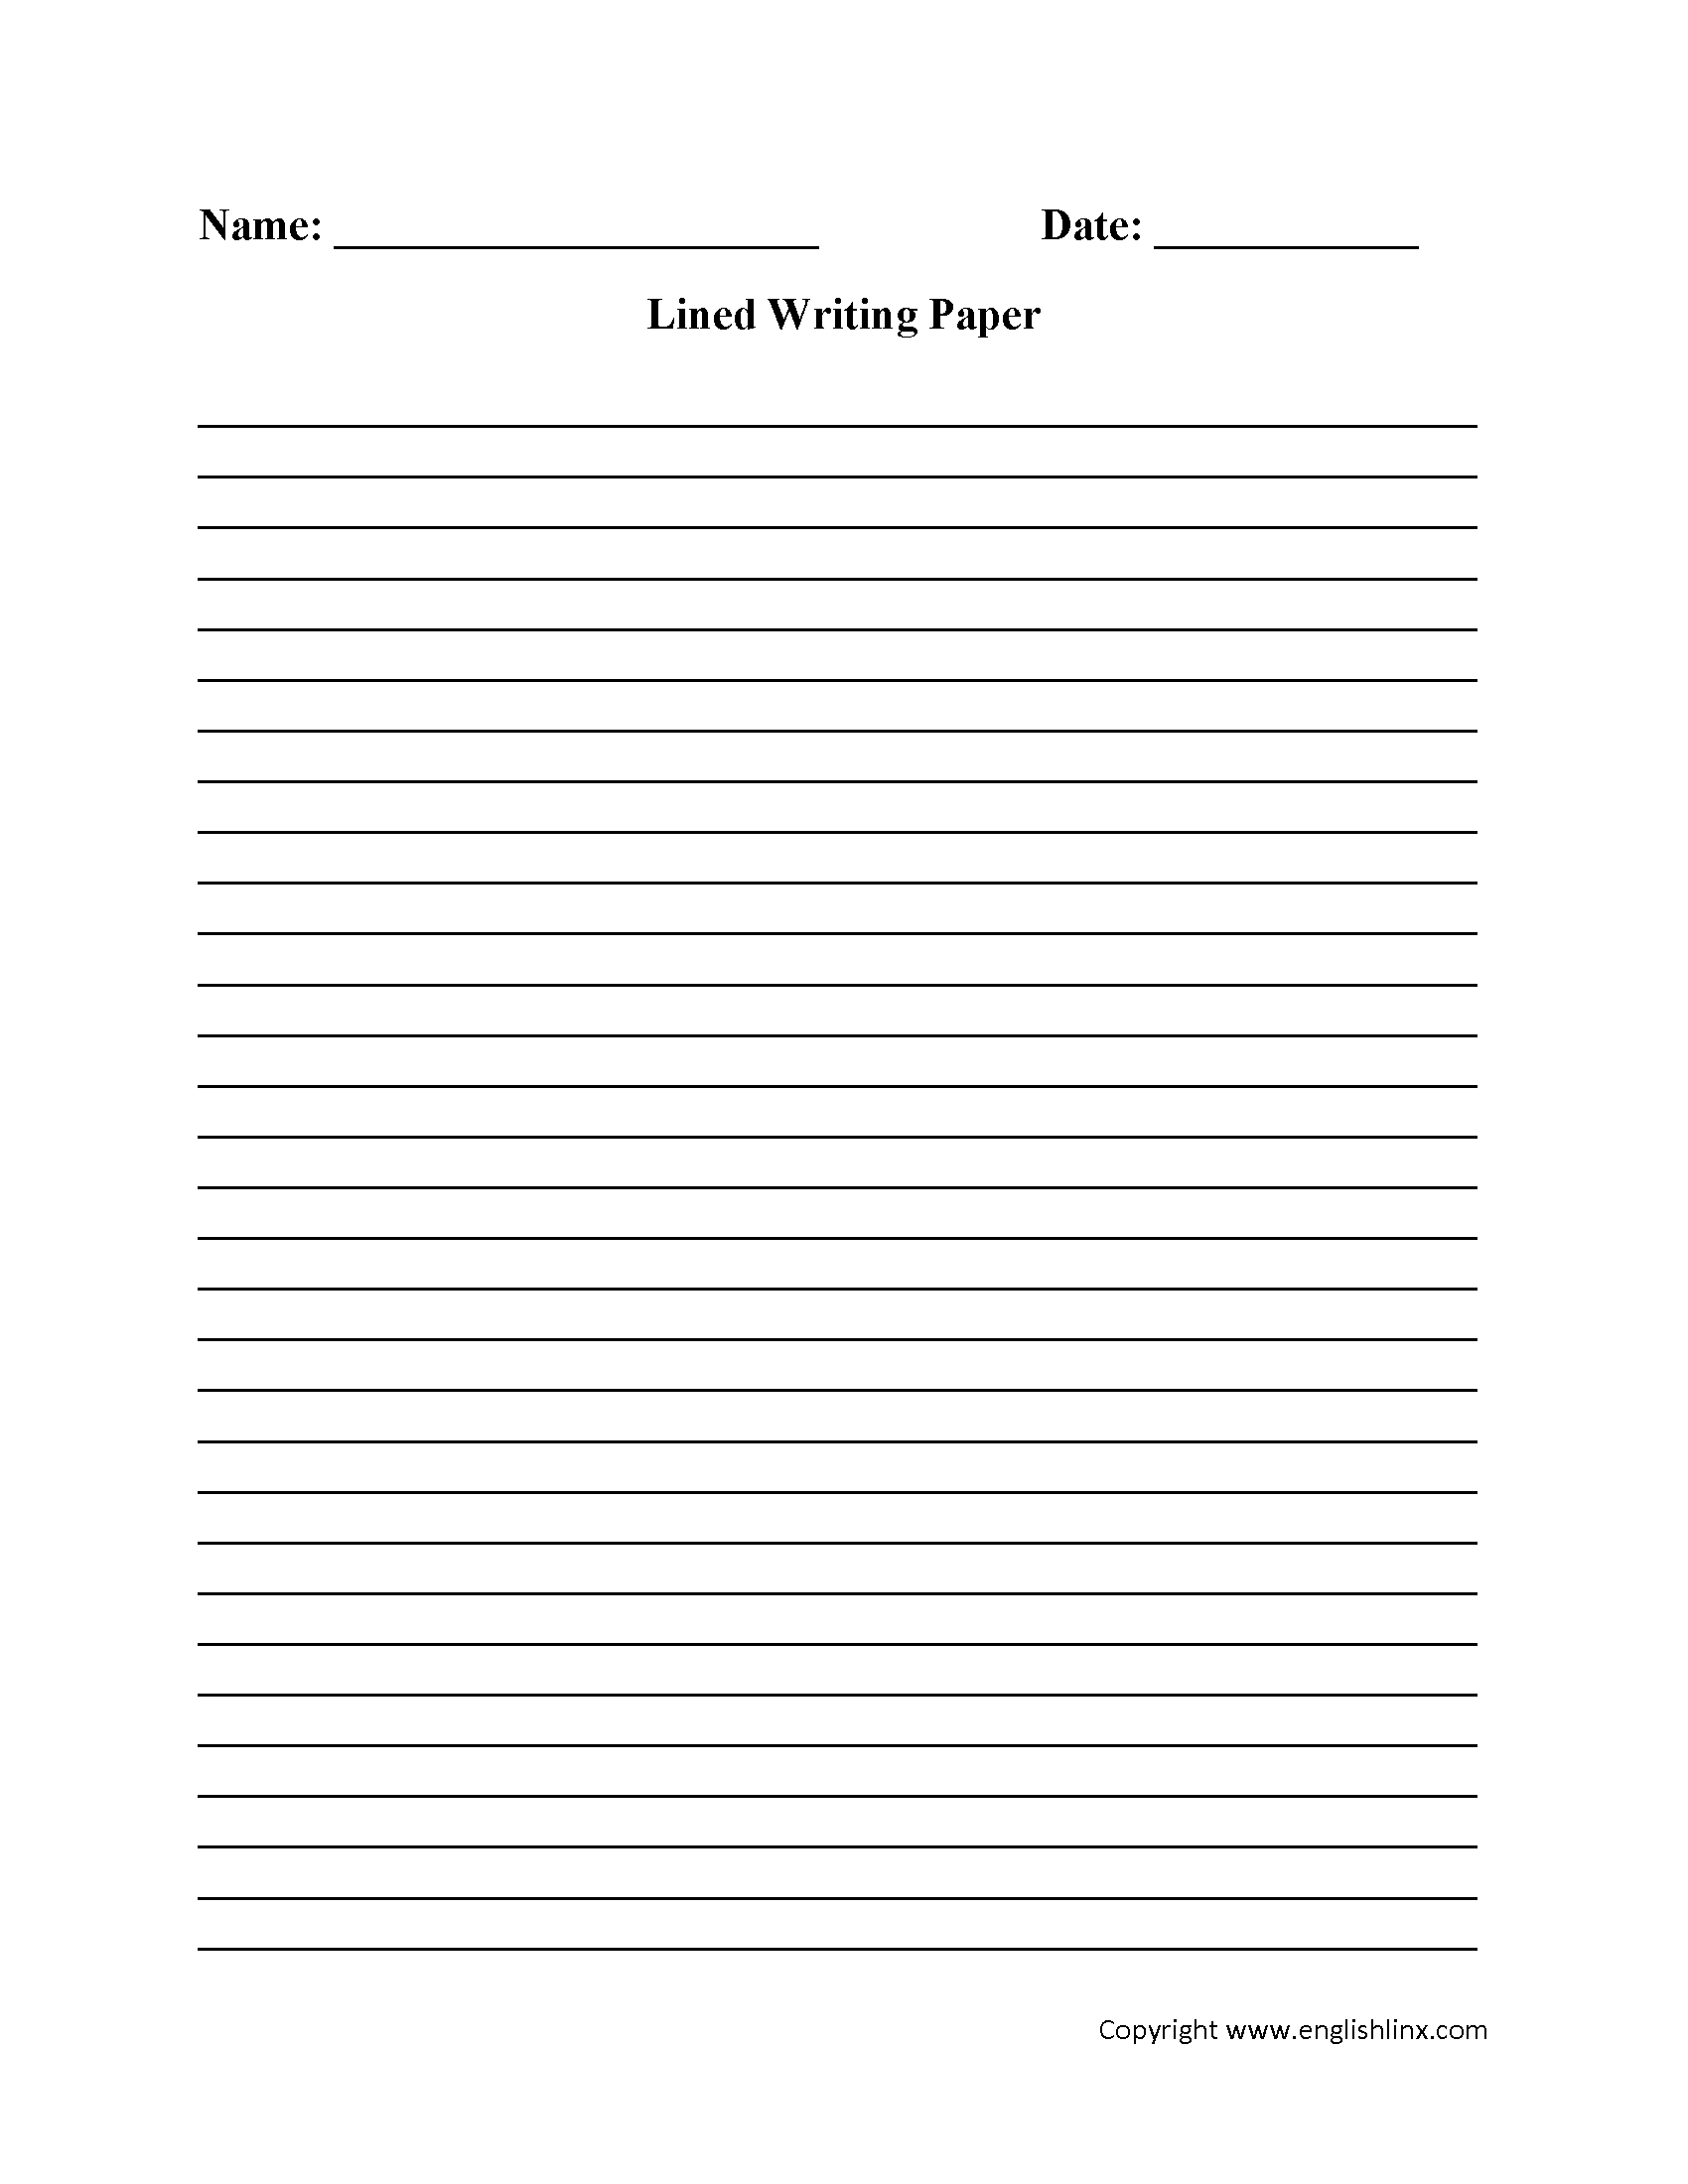 Writing Worksheets   Lined Writing Paper Worksheets - Free Printable Lined Writing Paper